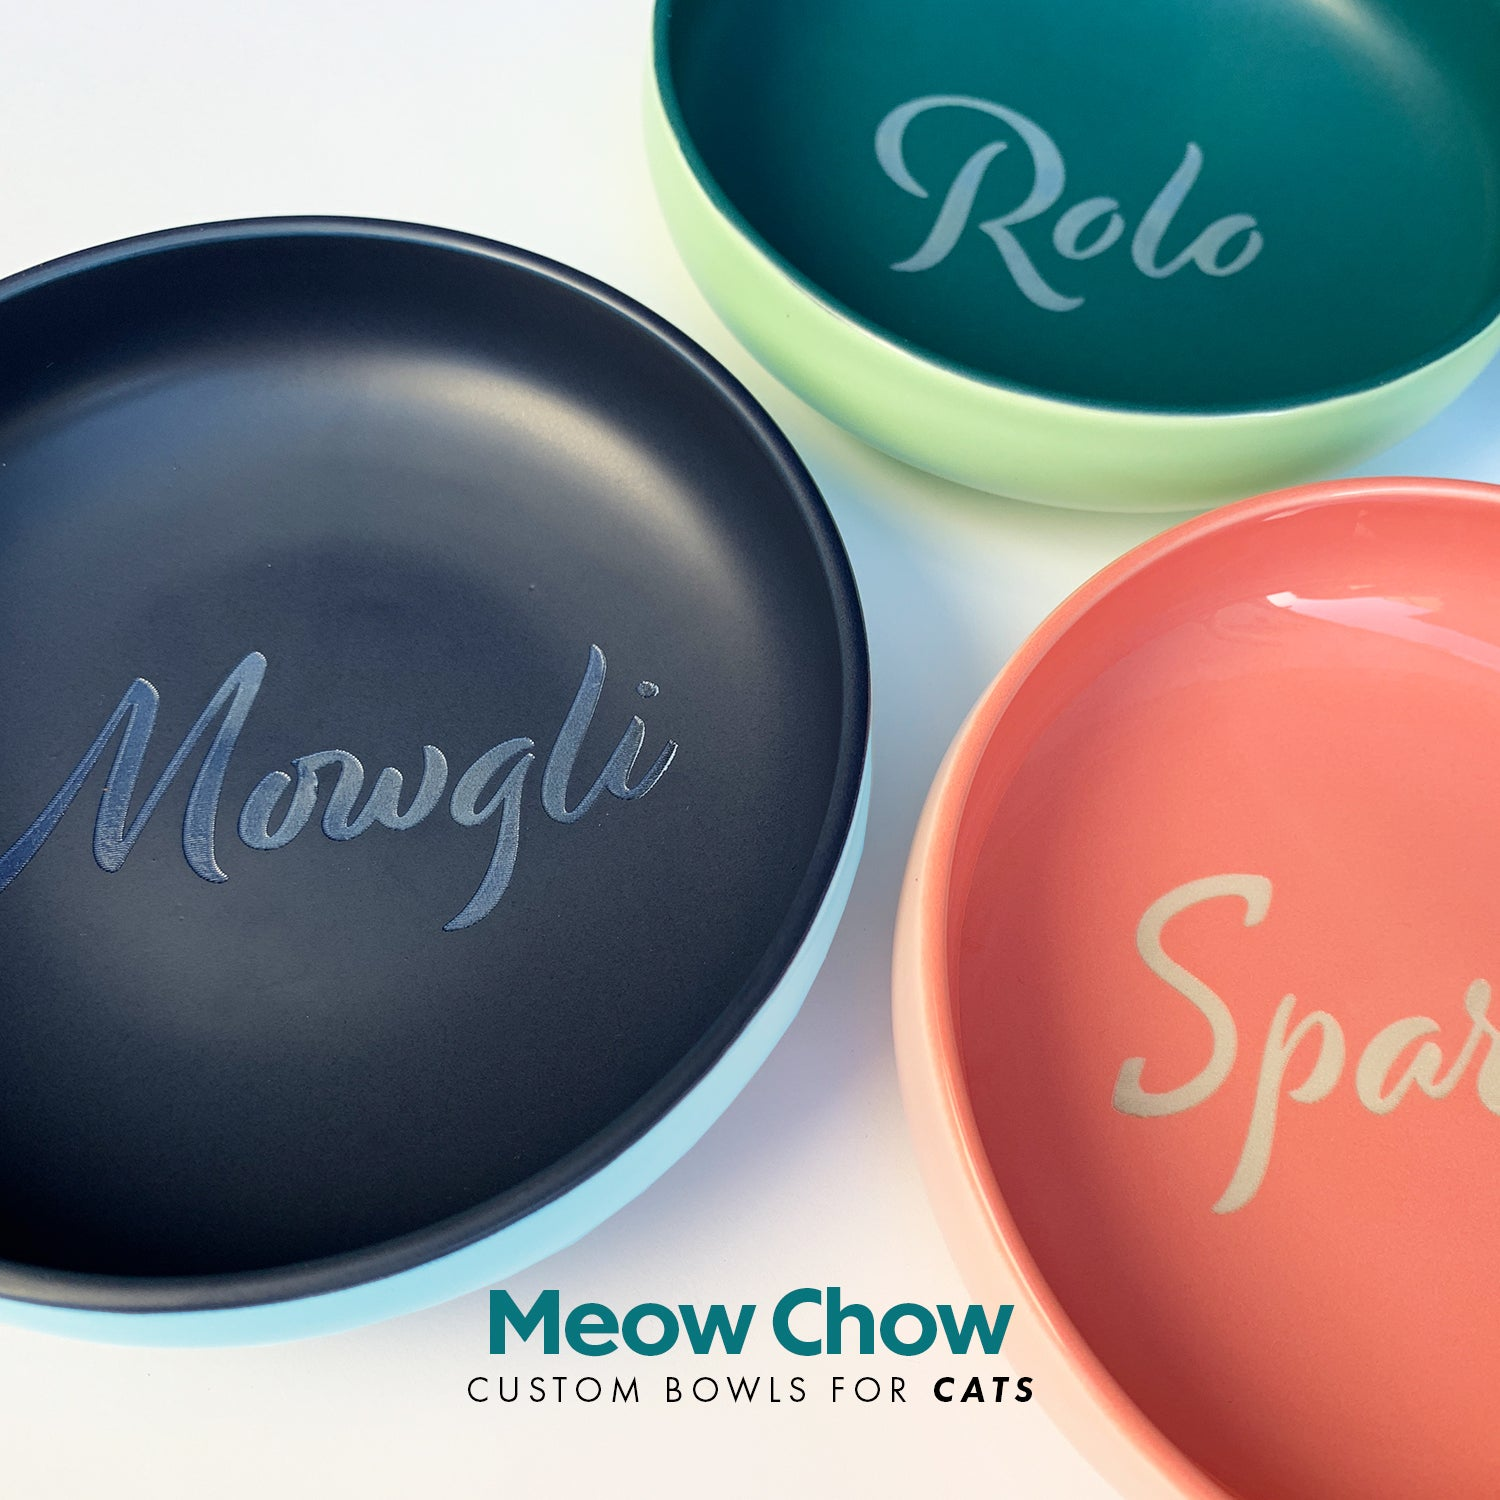 Meow Chow - Bowls for Cats